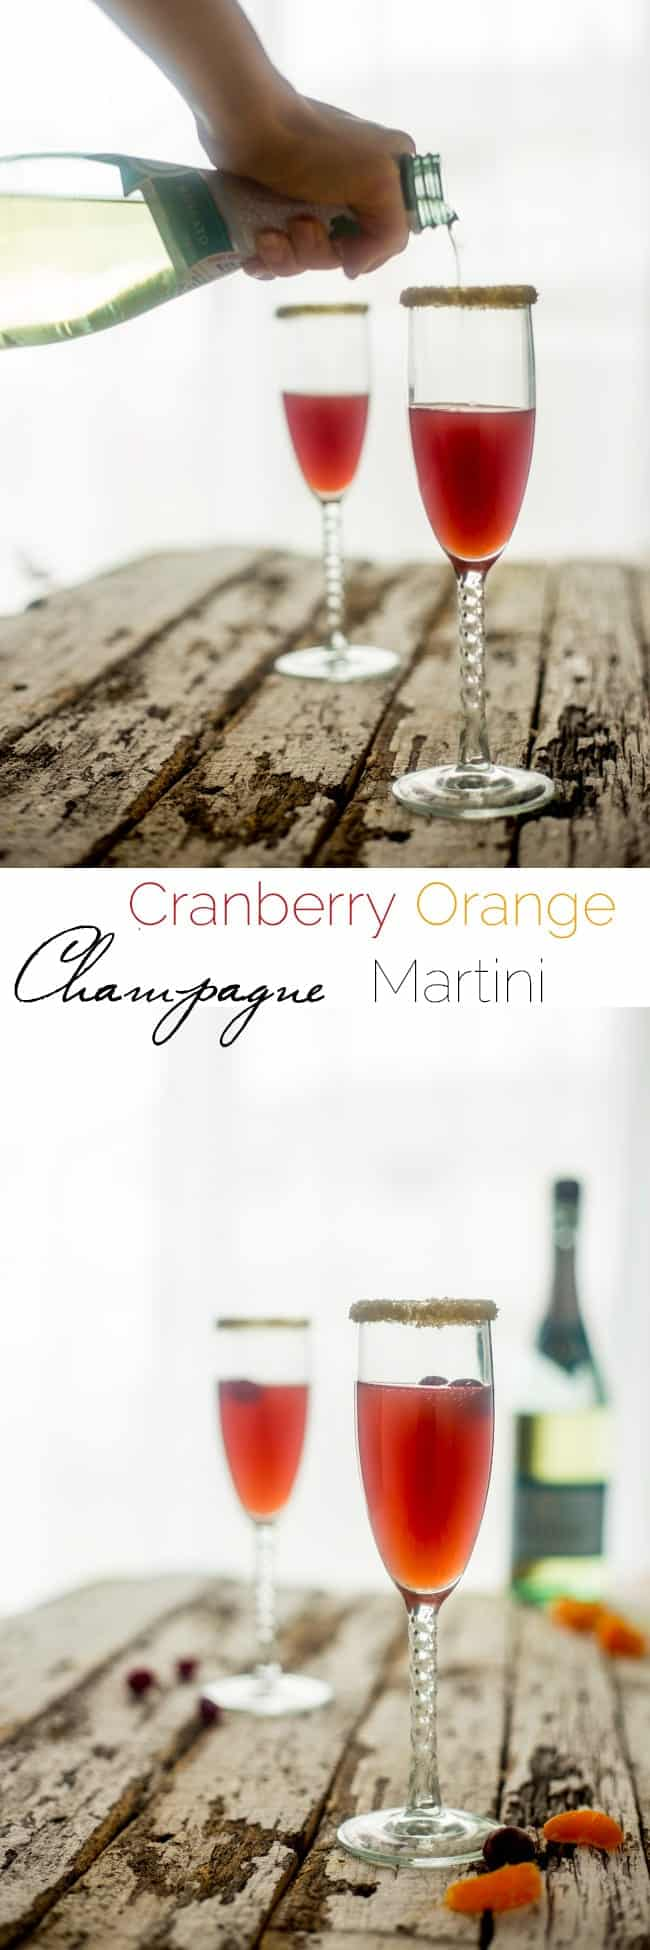 Champagne Orange Cranberry Cocktail - This cranberry cocktail has a touch of fresh orange juice and a splash of champagne to make it bubbly! It's so easy to make and perfect for holiday entertaining! | Foodfaithfitness.com | @FoodFaithFit